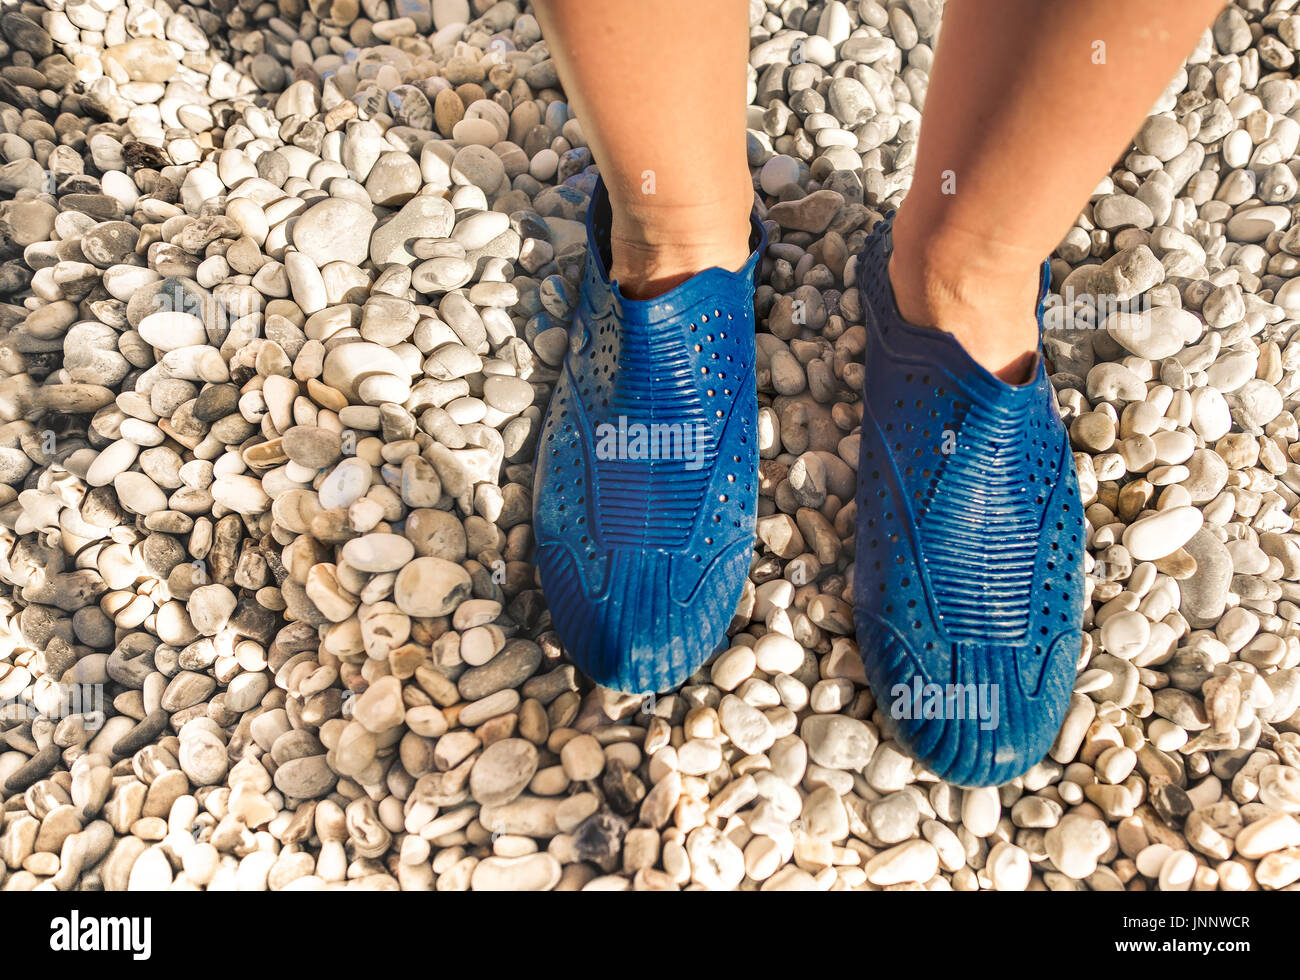 swimming shoes on stone beach - Stock Image